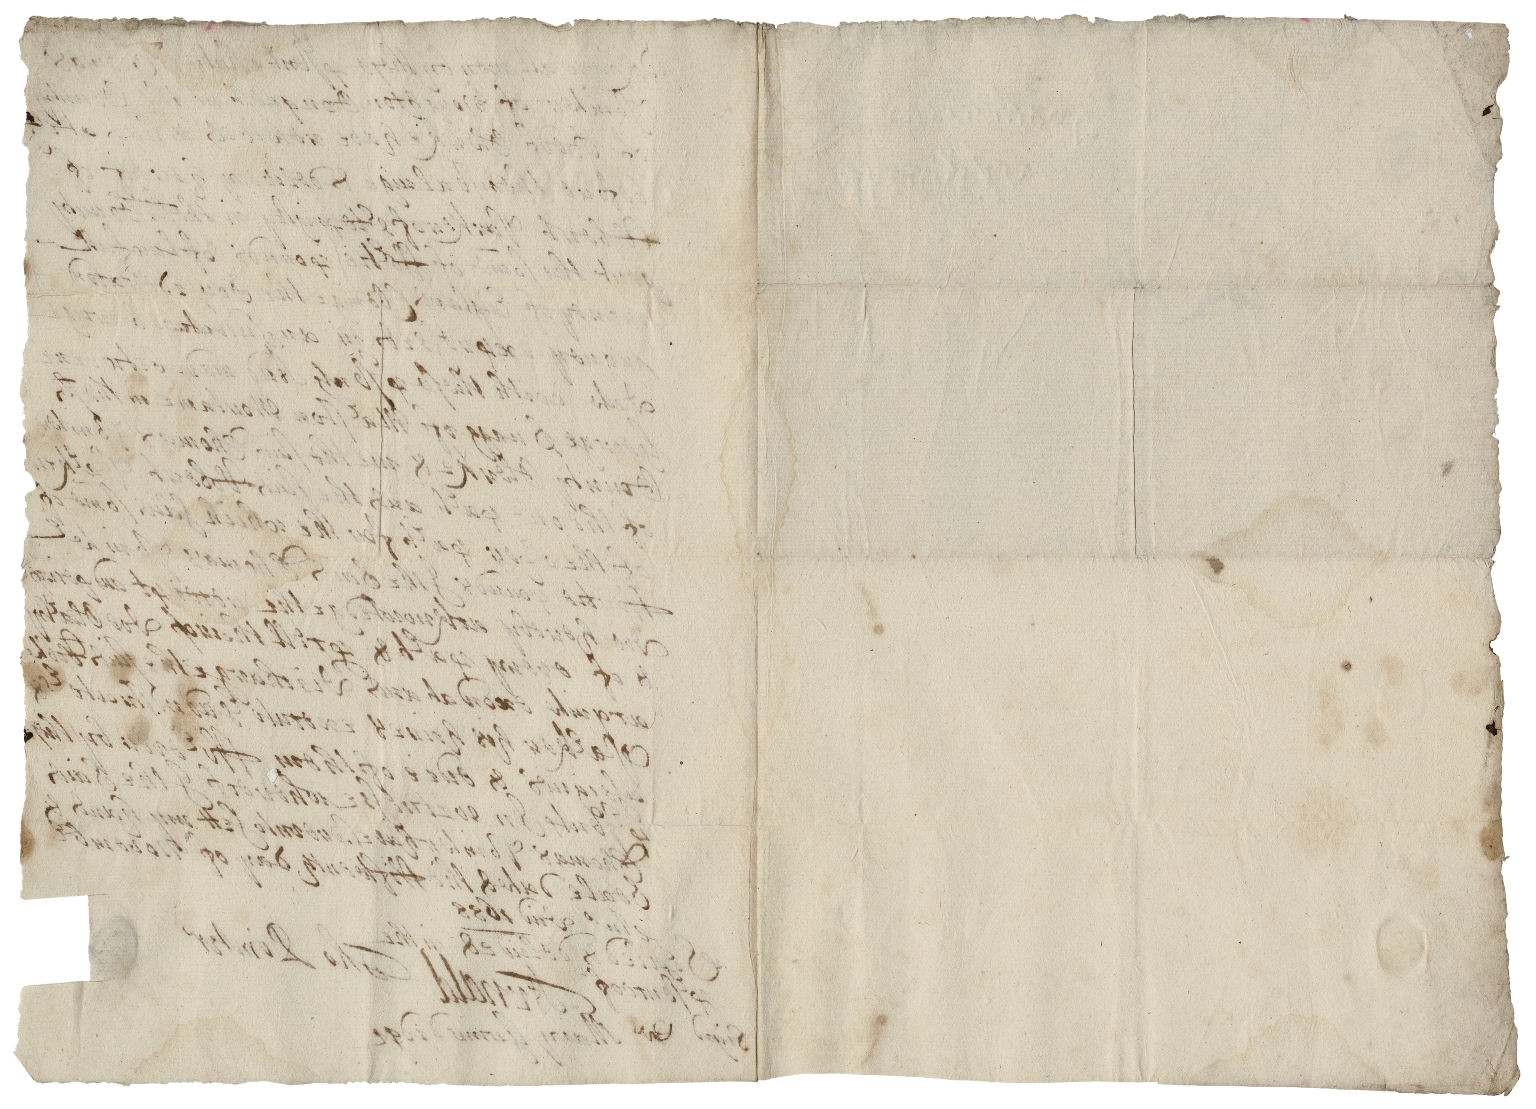 Acquittance from Thomas Pointer of Houghton Conquest, Bedfordshire, to Robert Park of Steppingley, Bedfordshire